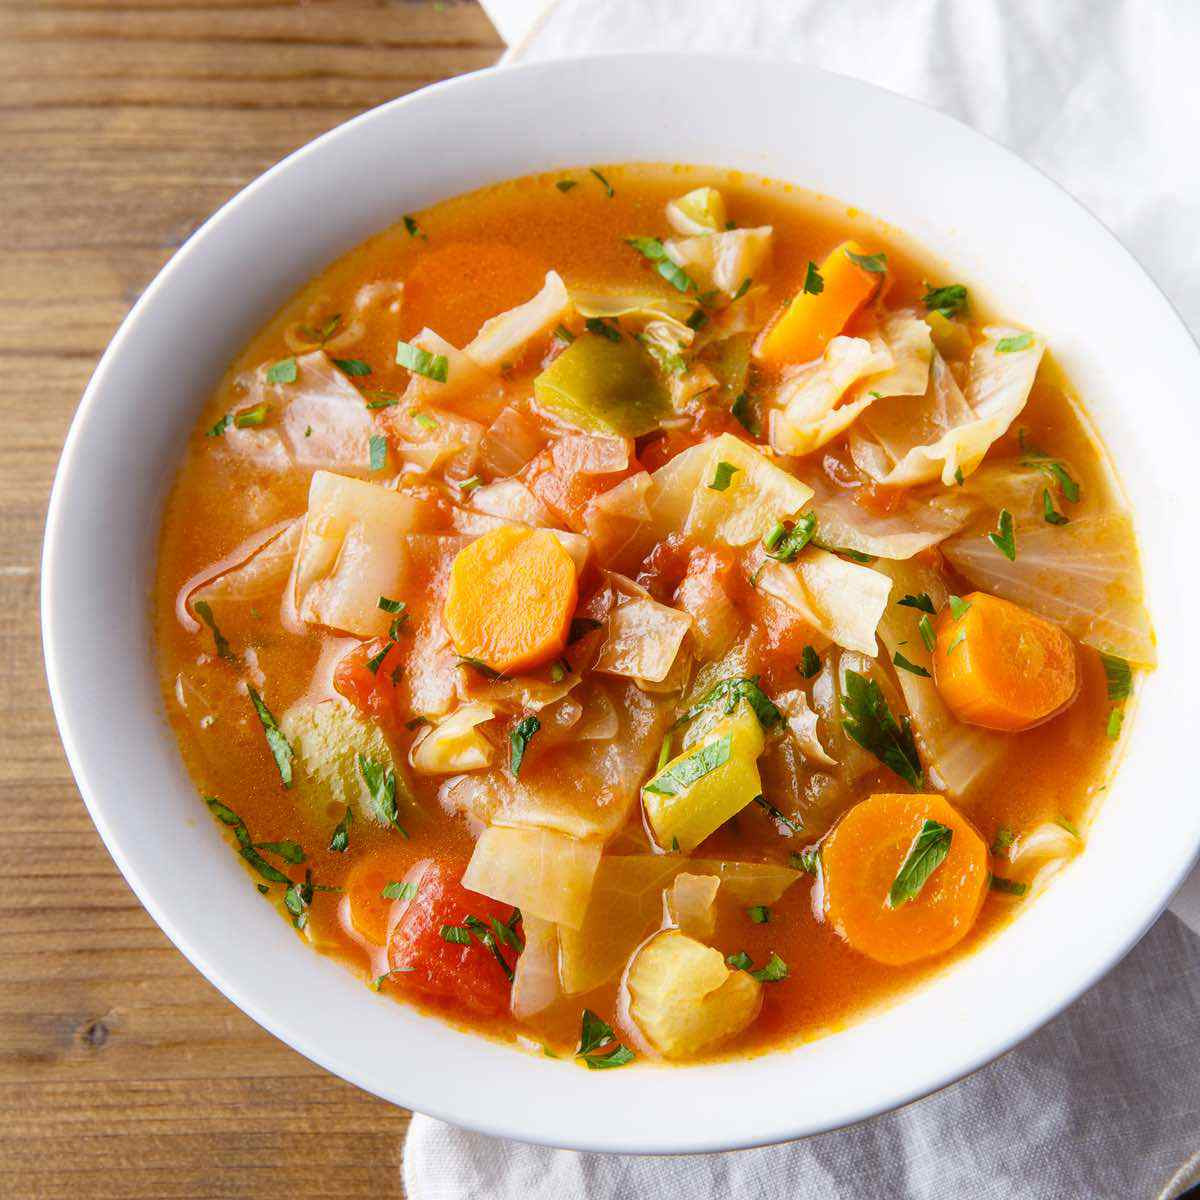 Healthy Canned Soups For Weight Loss  Cabbage Weight Loss Soup Cozy forting and Nutritious